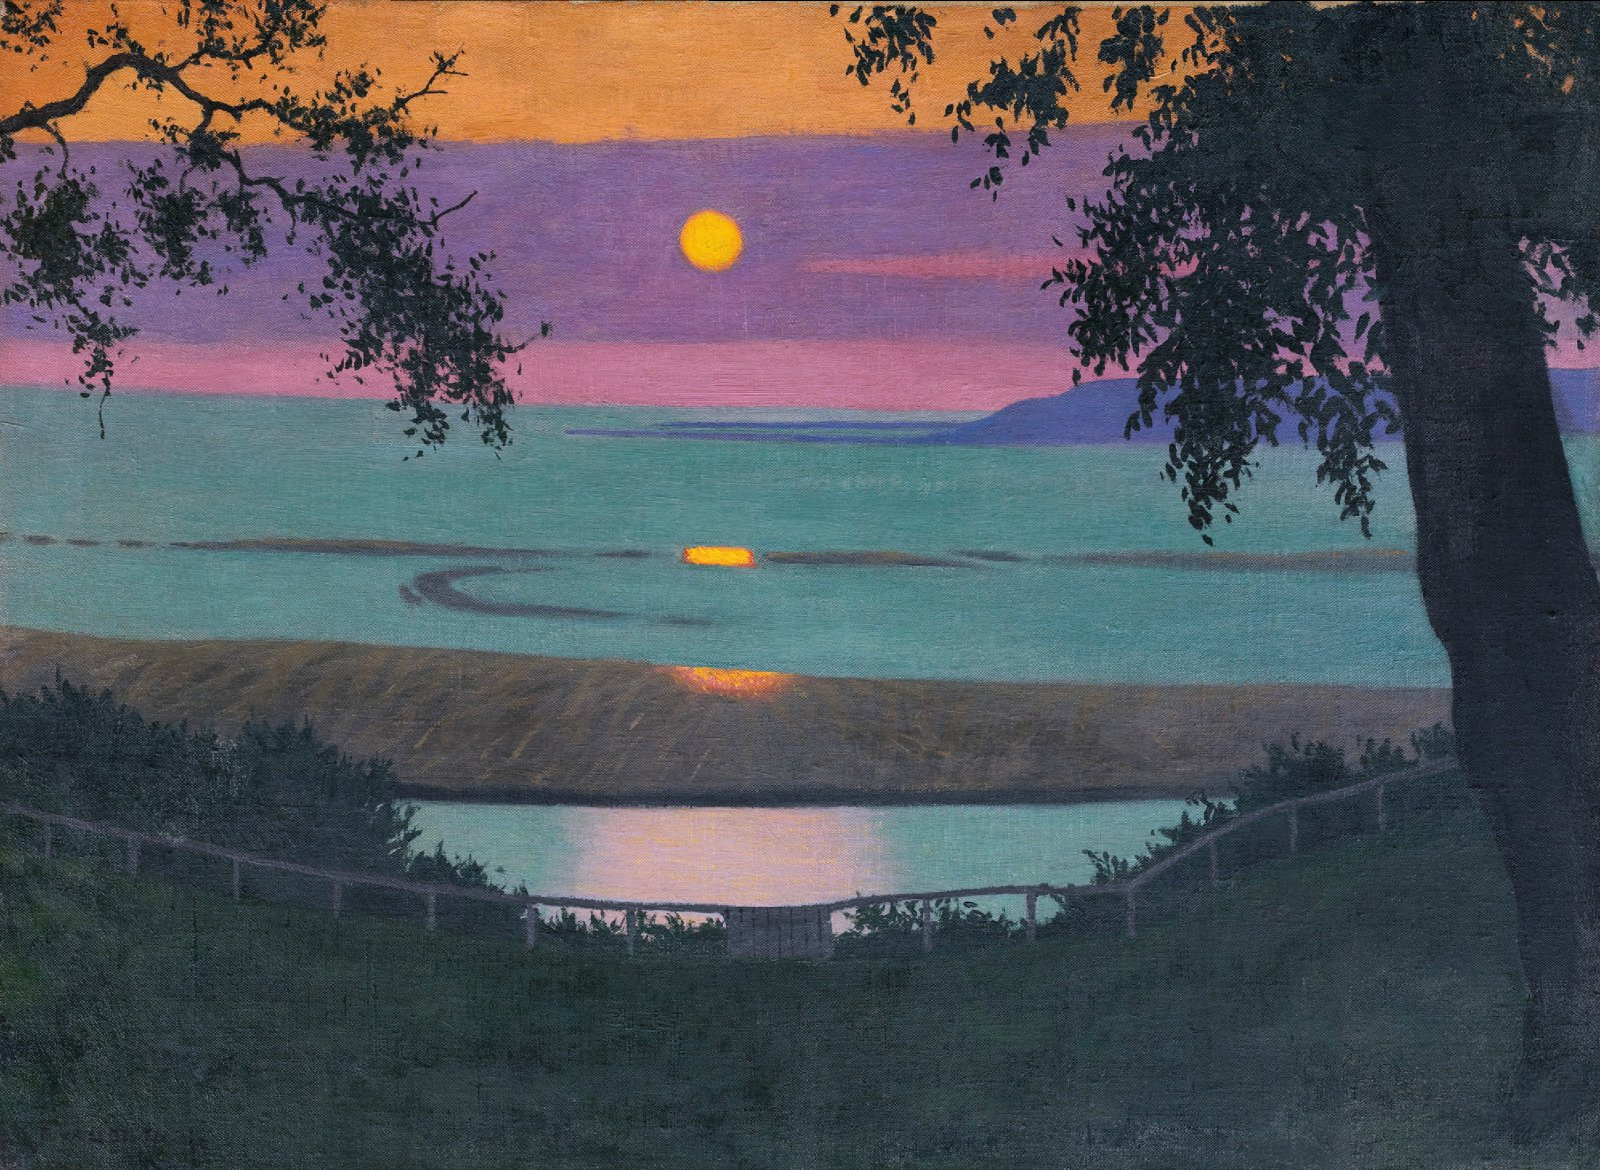 Felix vallotton  sunset at grace  orange and violet sky  1918